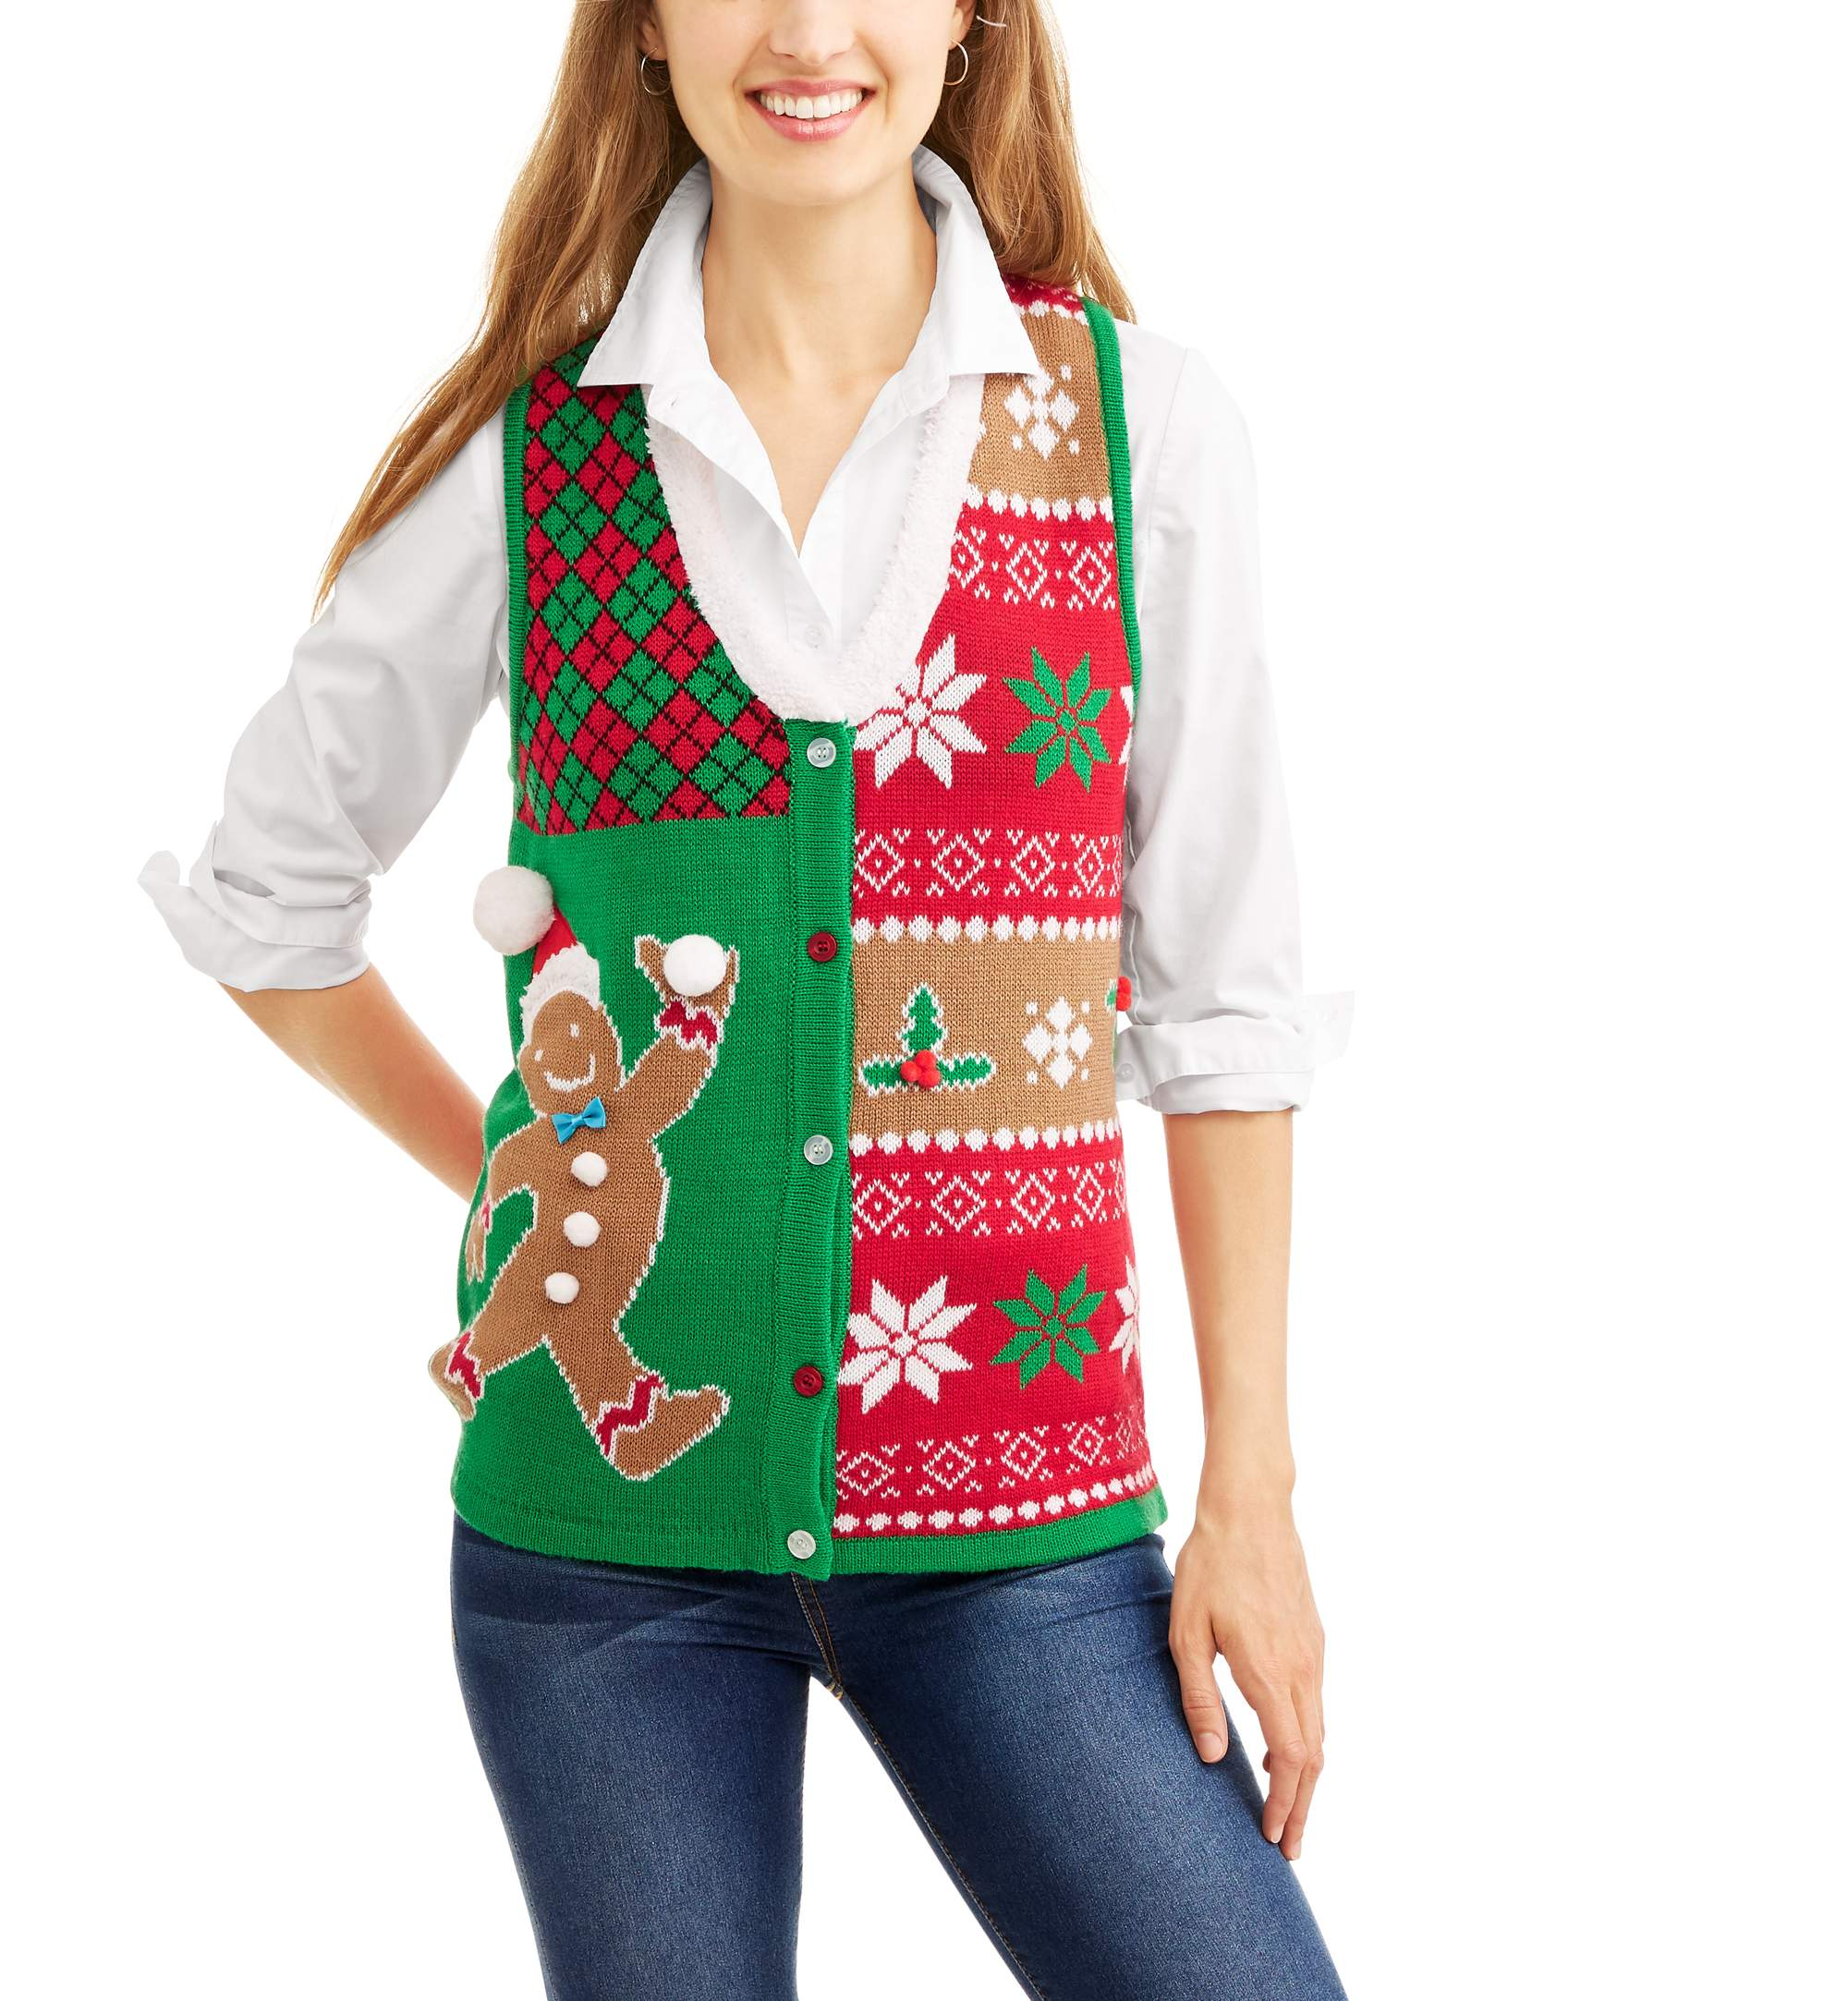 Allison Brittney Women's Ugly Christmas Sweater Vest with Faux Fur Collar